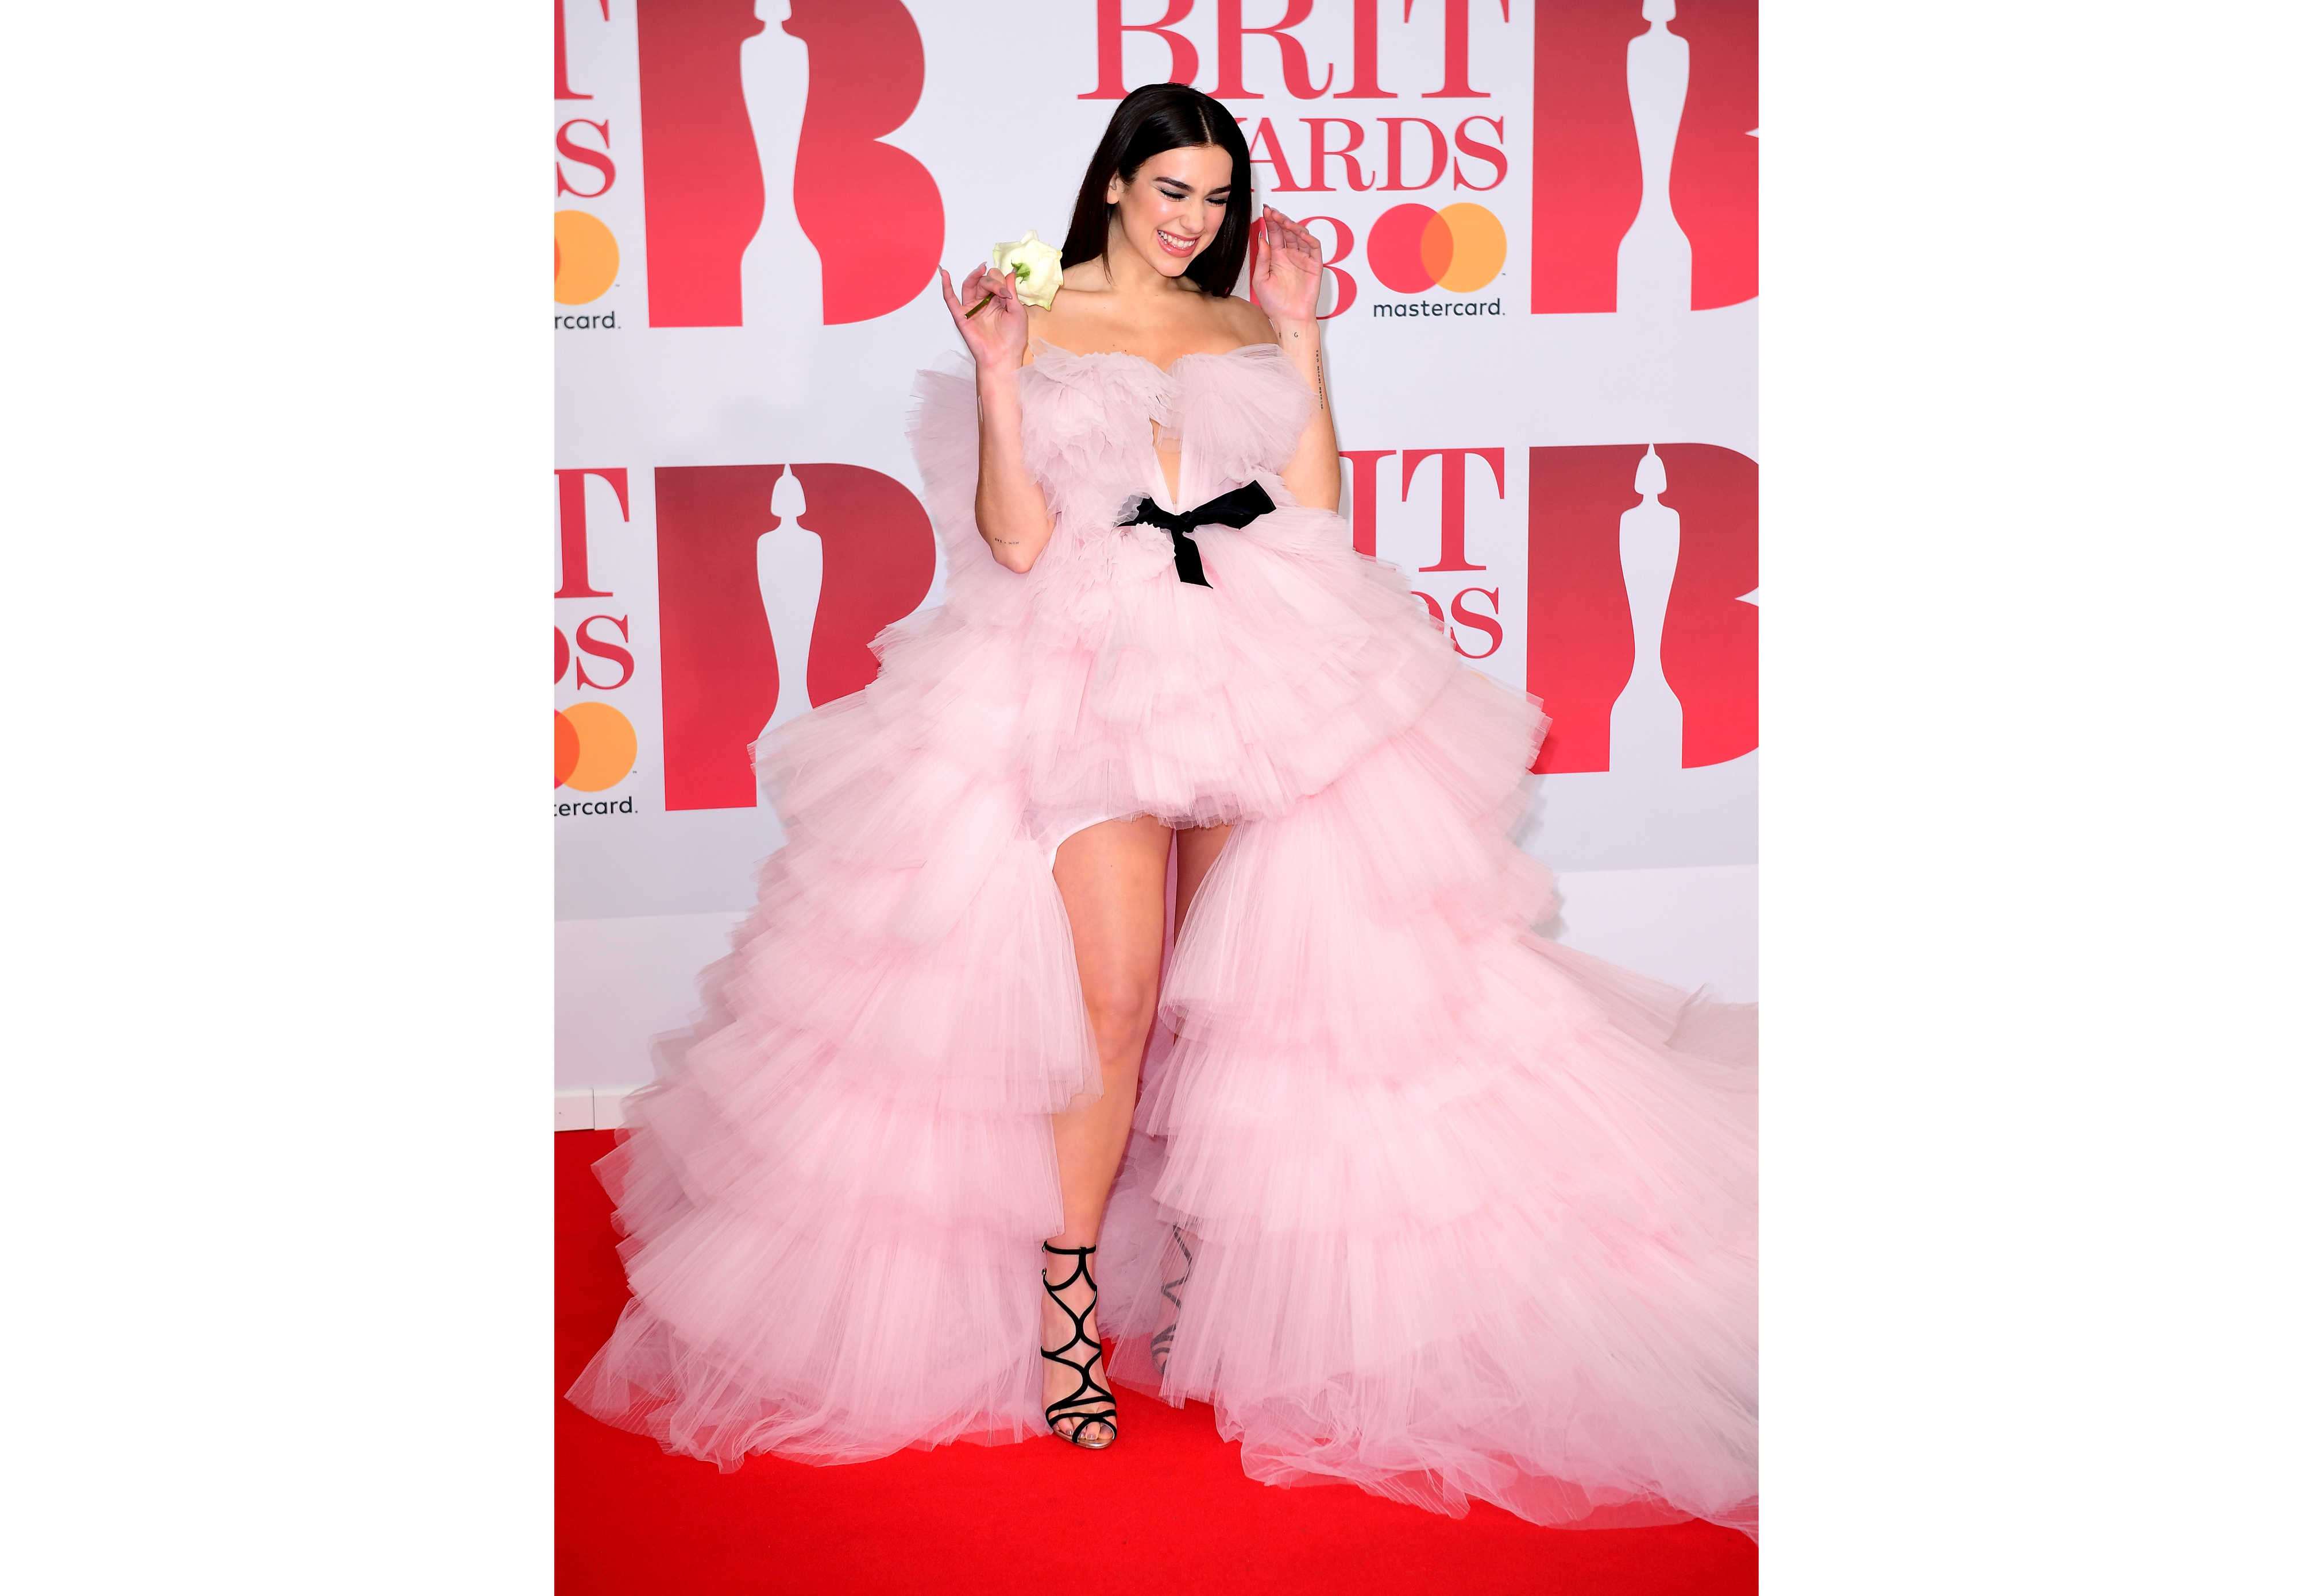 Dua Lipa attending the Brit Awards at the O2 Arena, London.